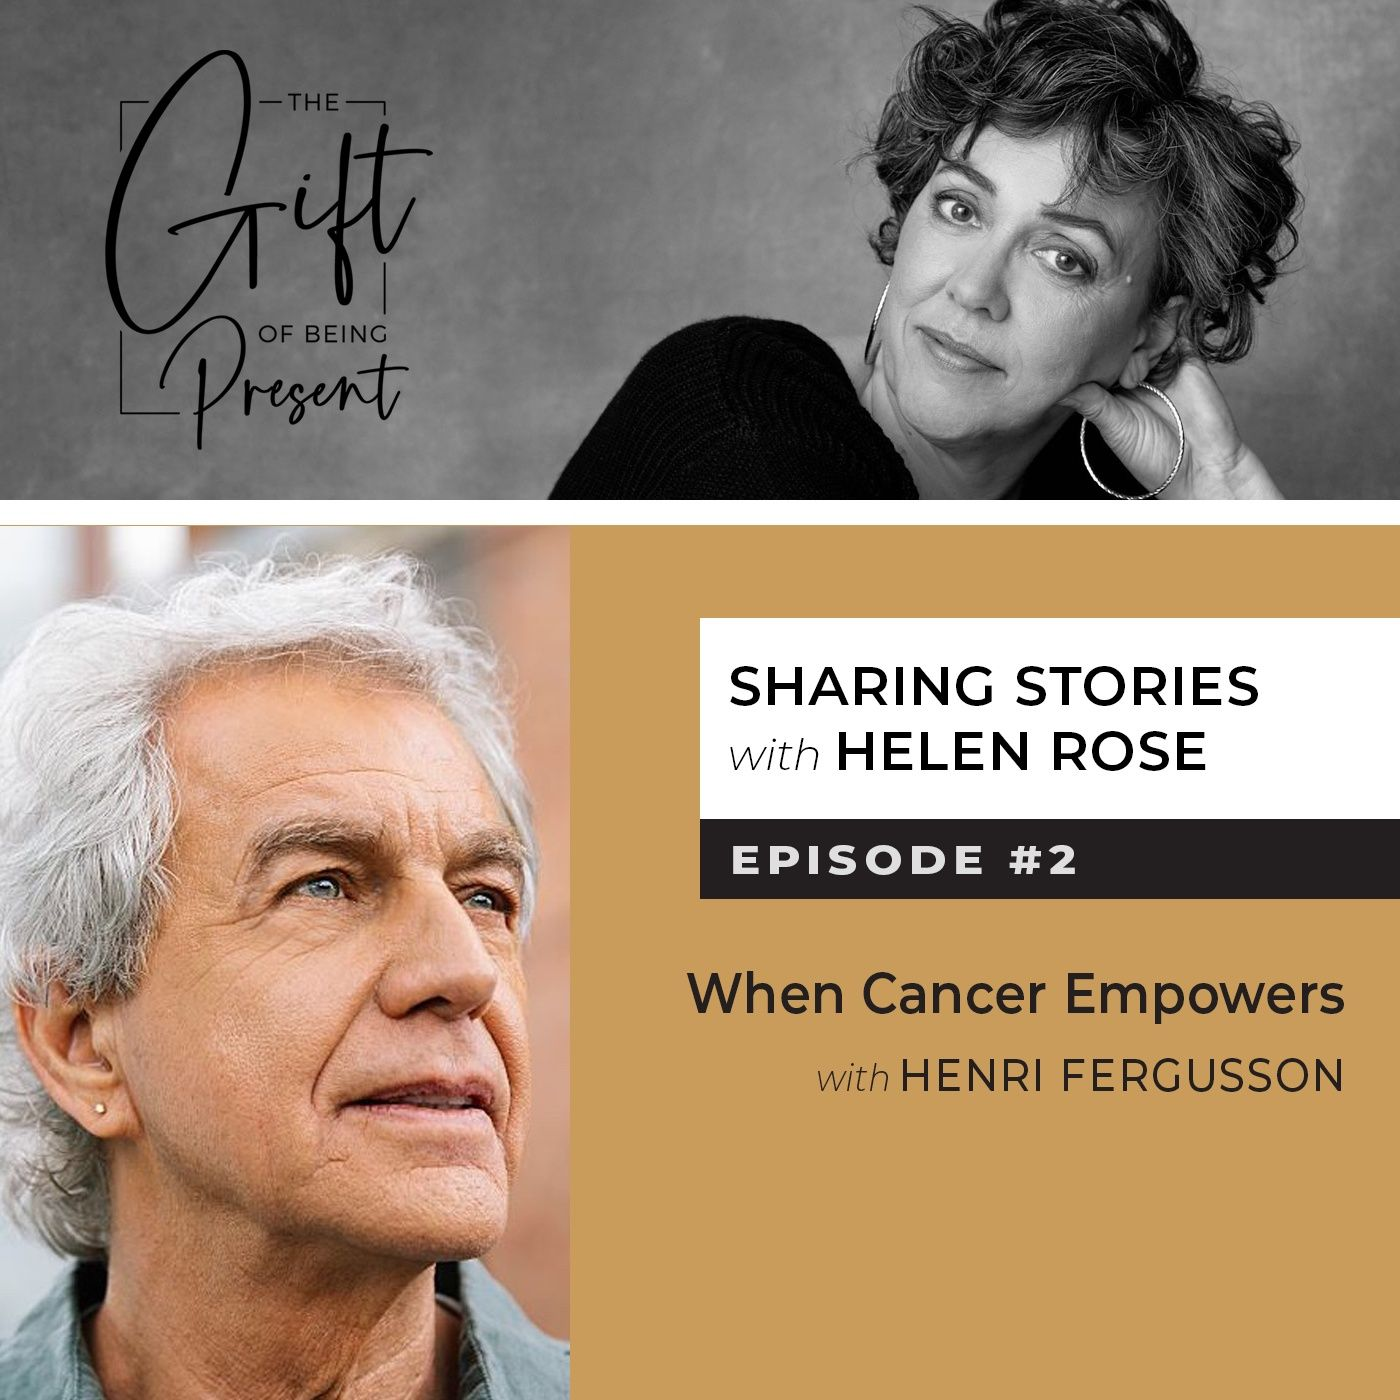 When Cancer Empowers with Henri Fergusson